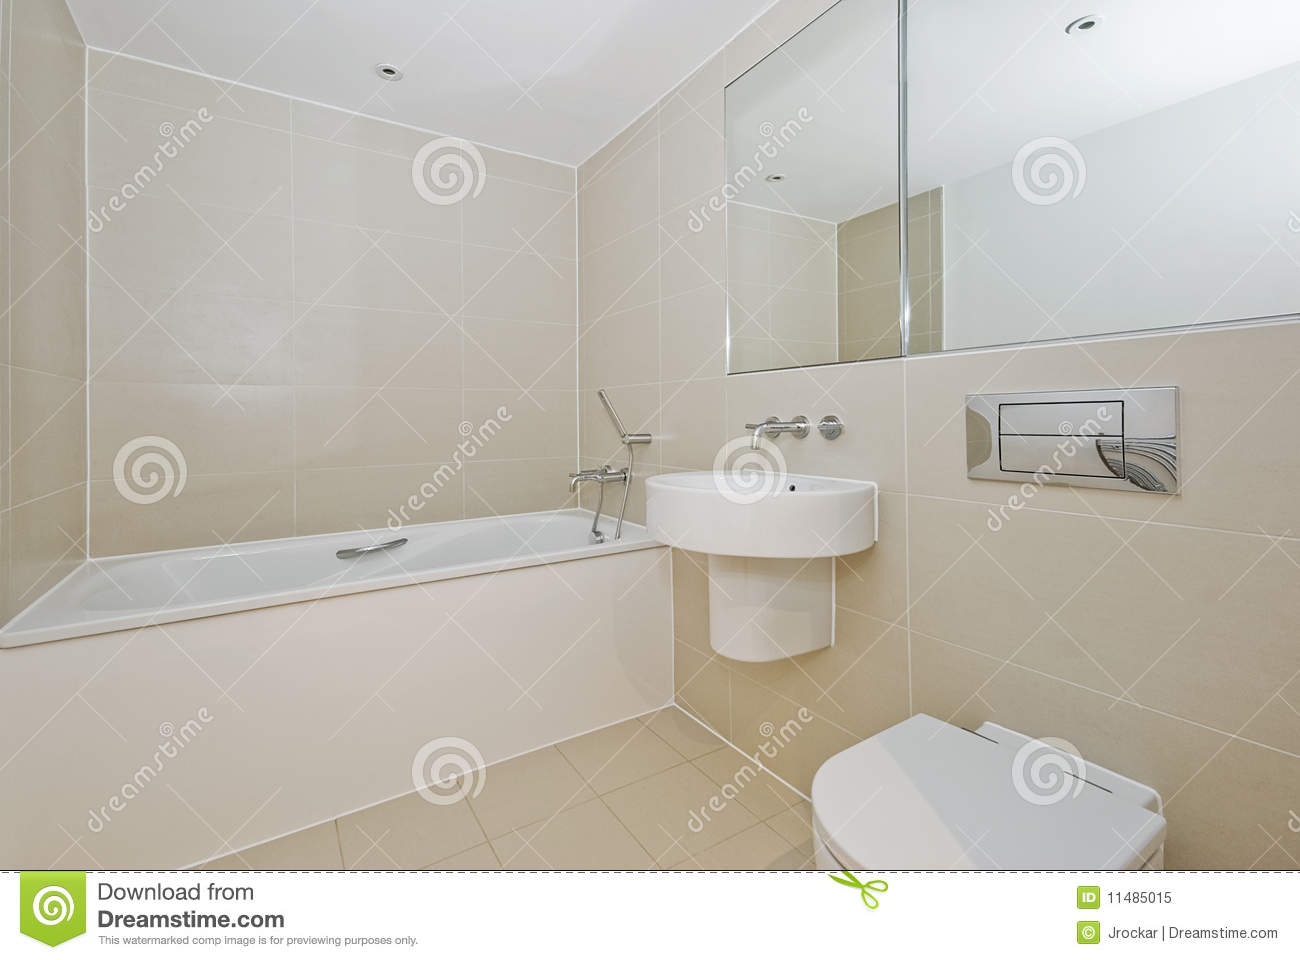 Bathroom with modern appliances stock image image 11485015 for Bathroom appliances